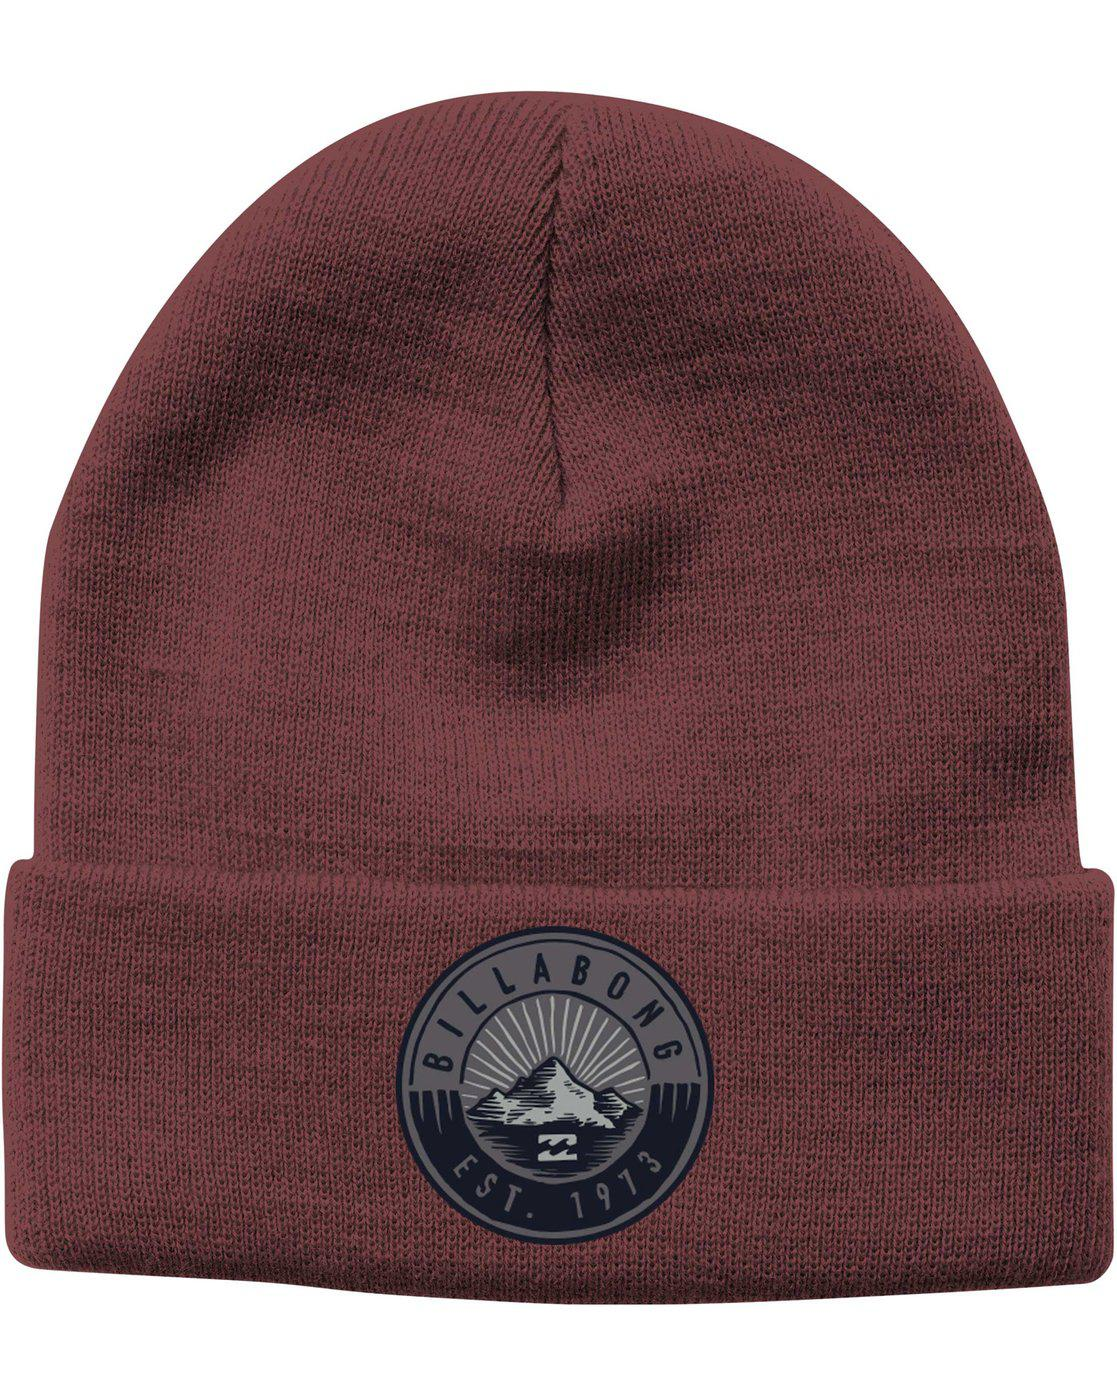 881a1959690c7 Gallery. Previously sold at  Billabong · Men s Pink Beanies ...